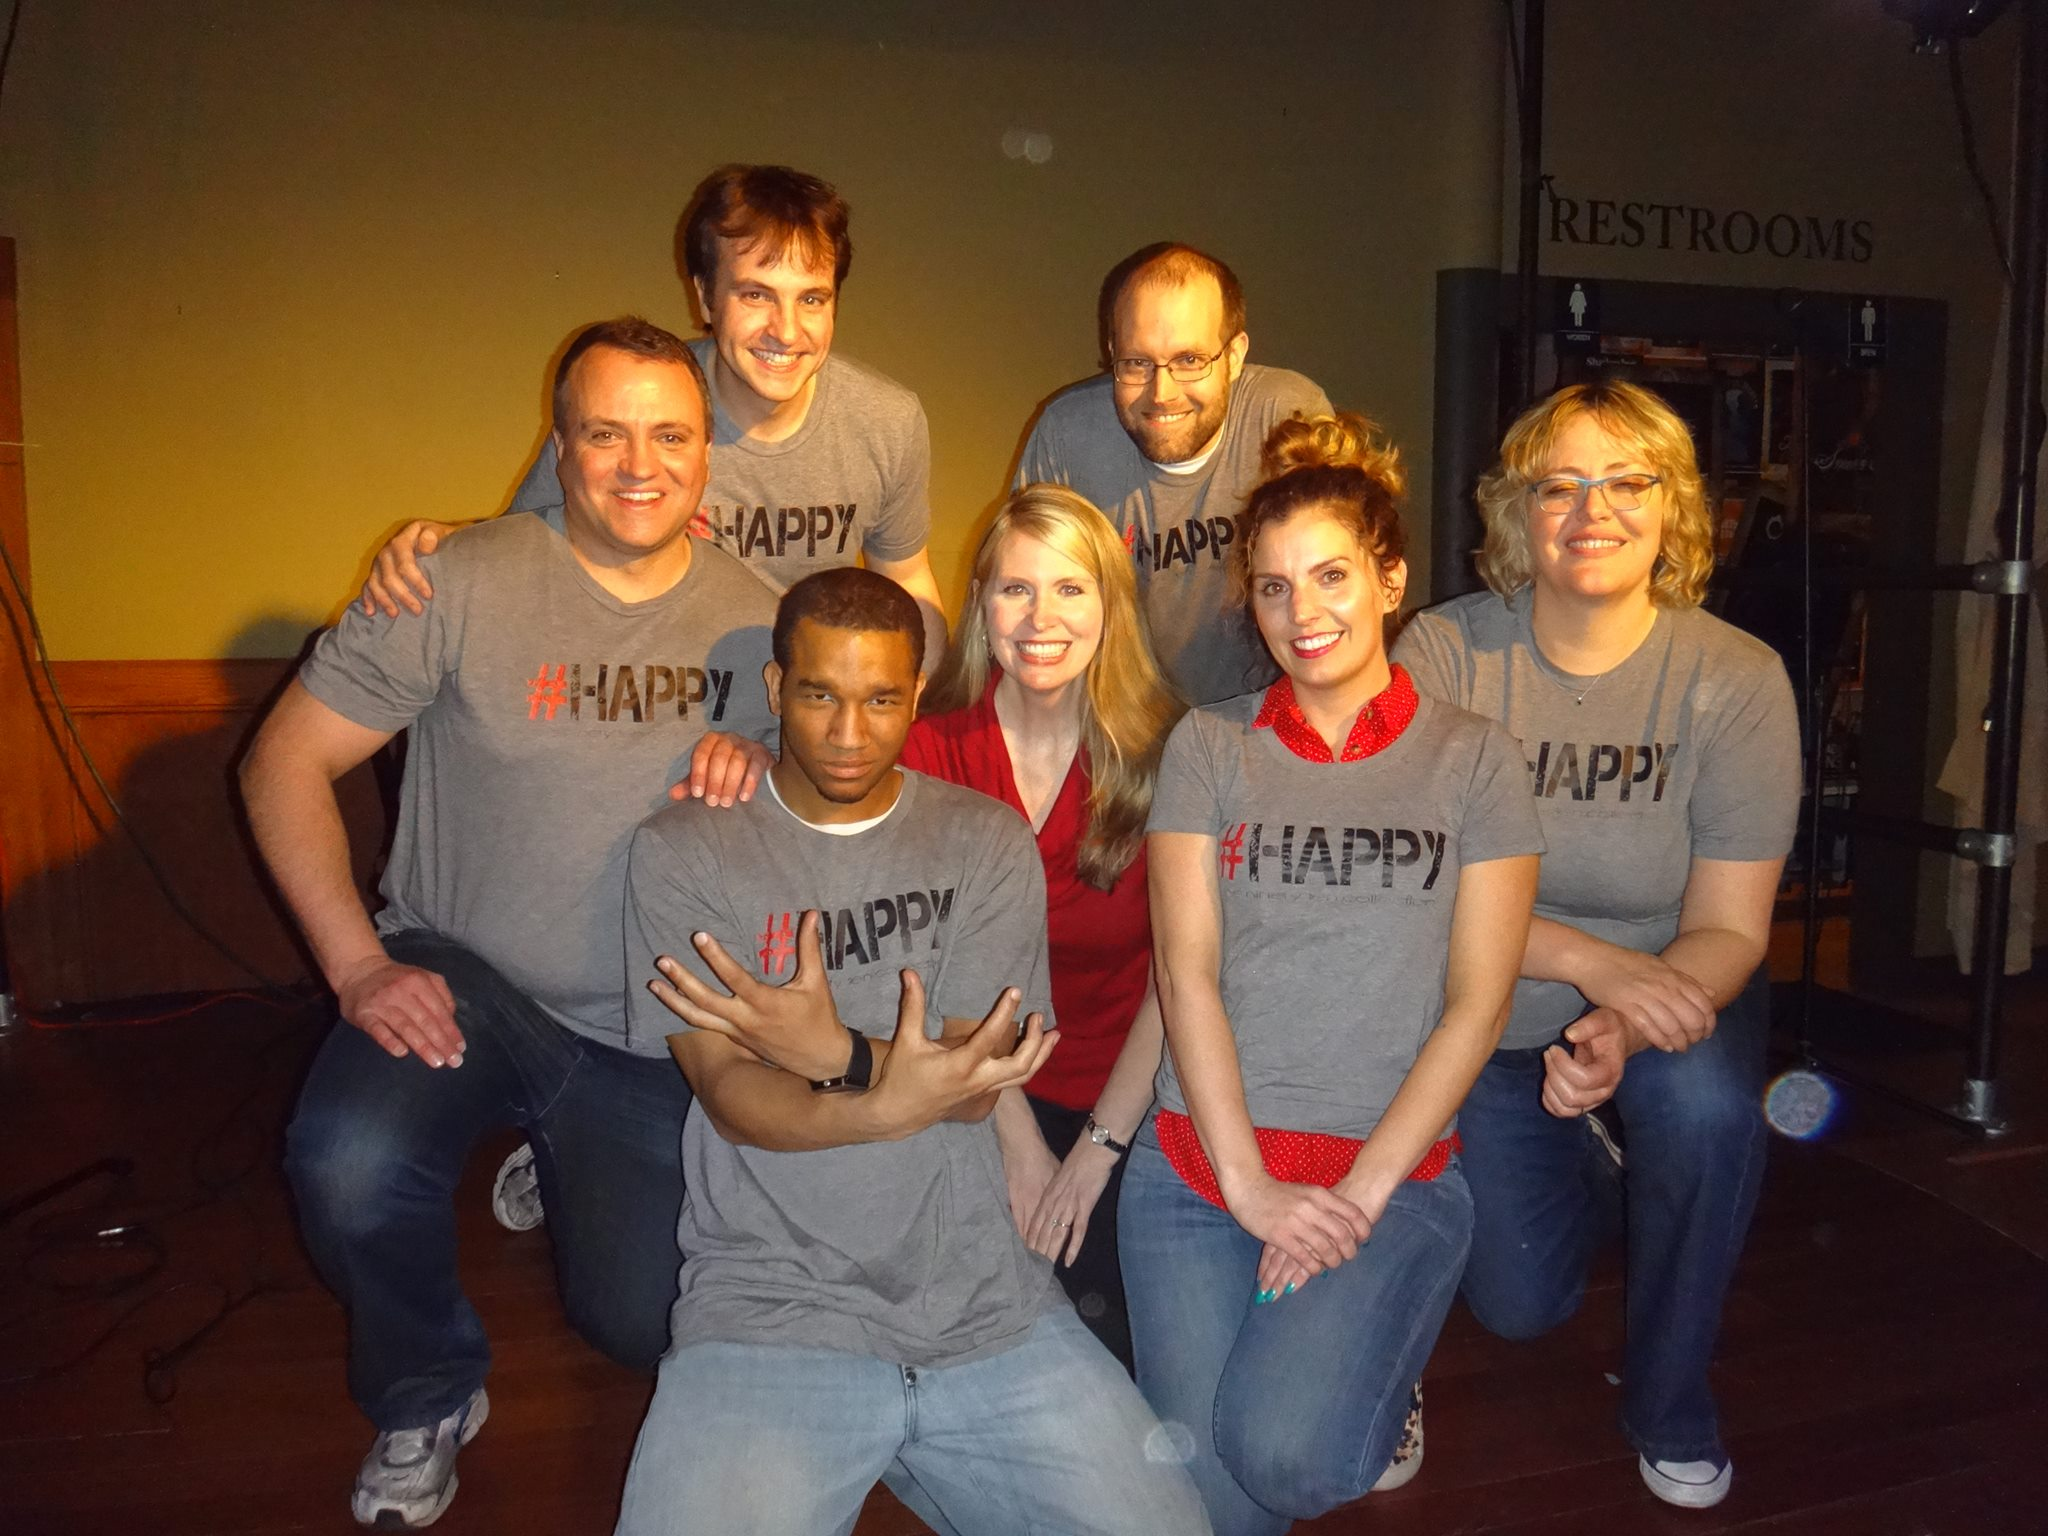 hashtag comedy improv amy taylor stories